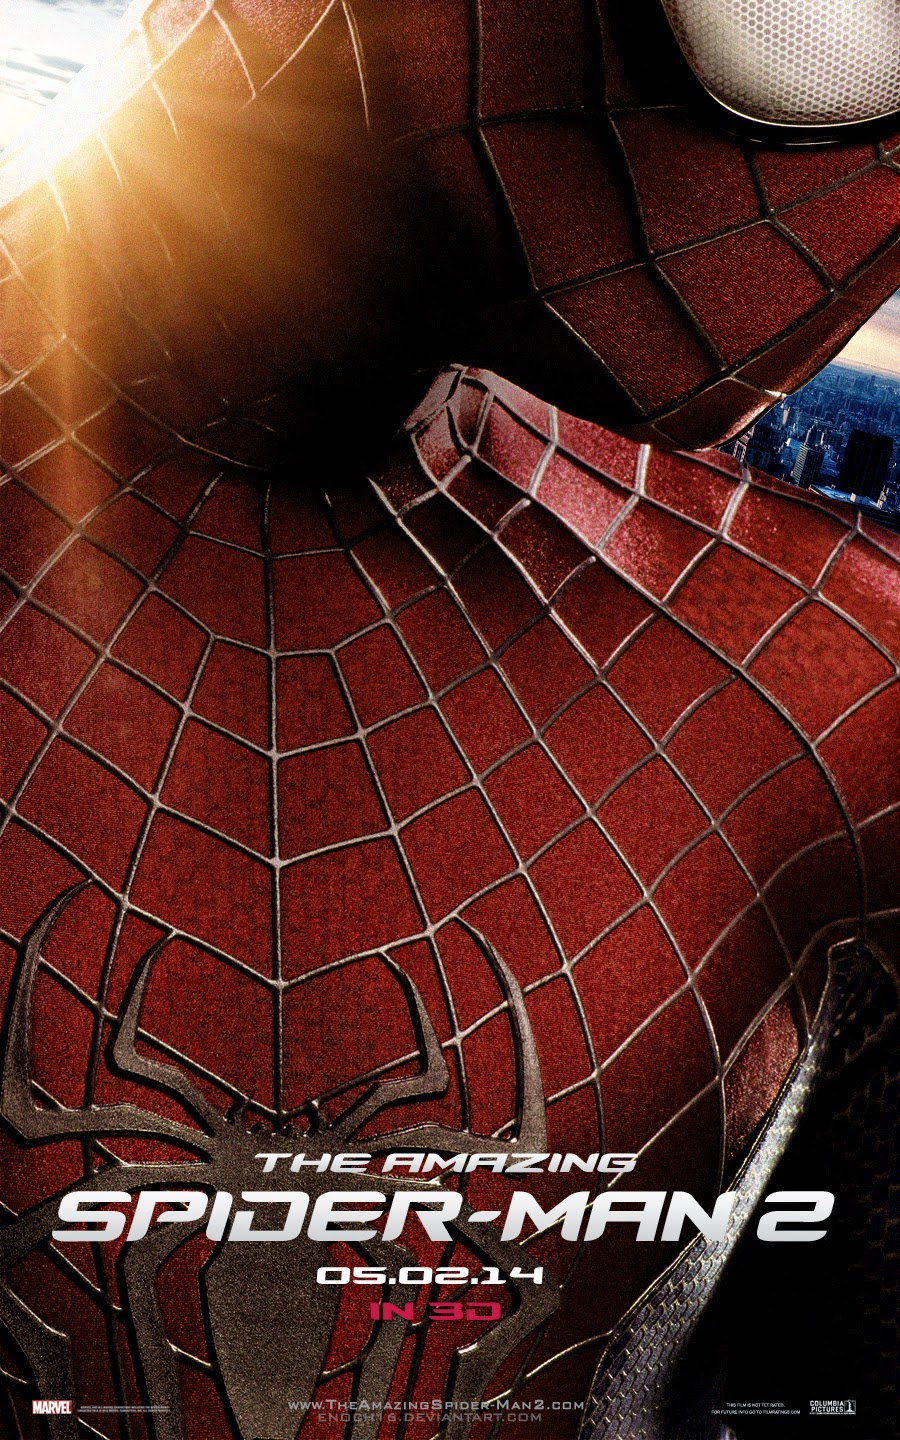 coming soon - the amazing spider-man 2